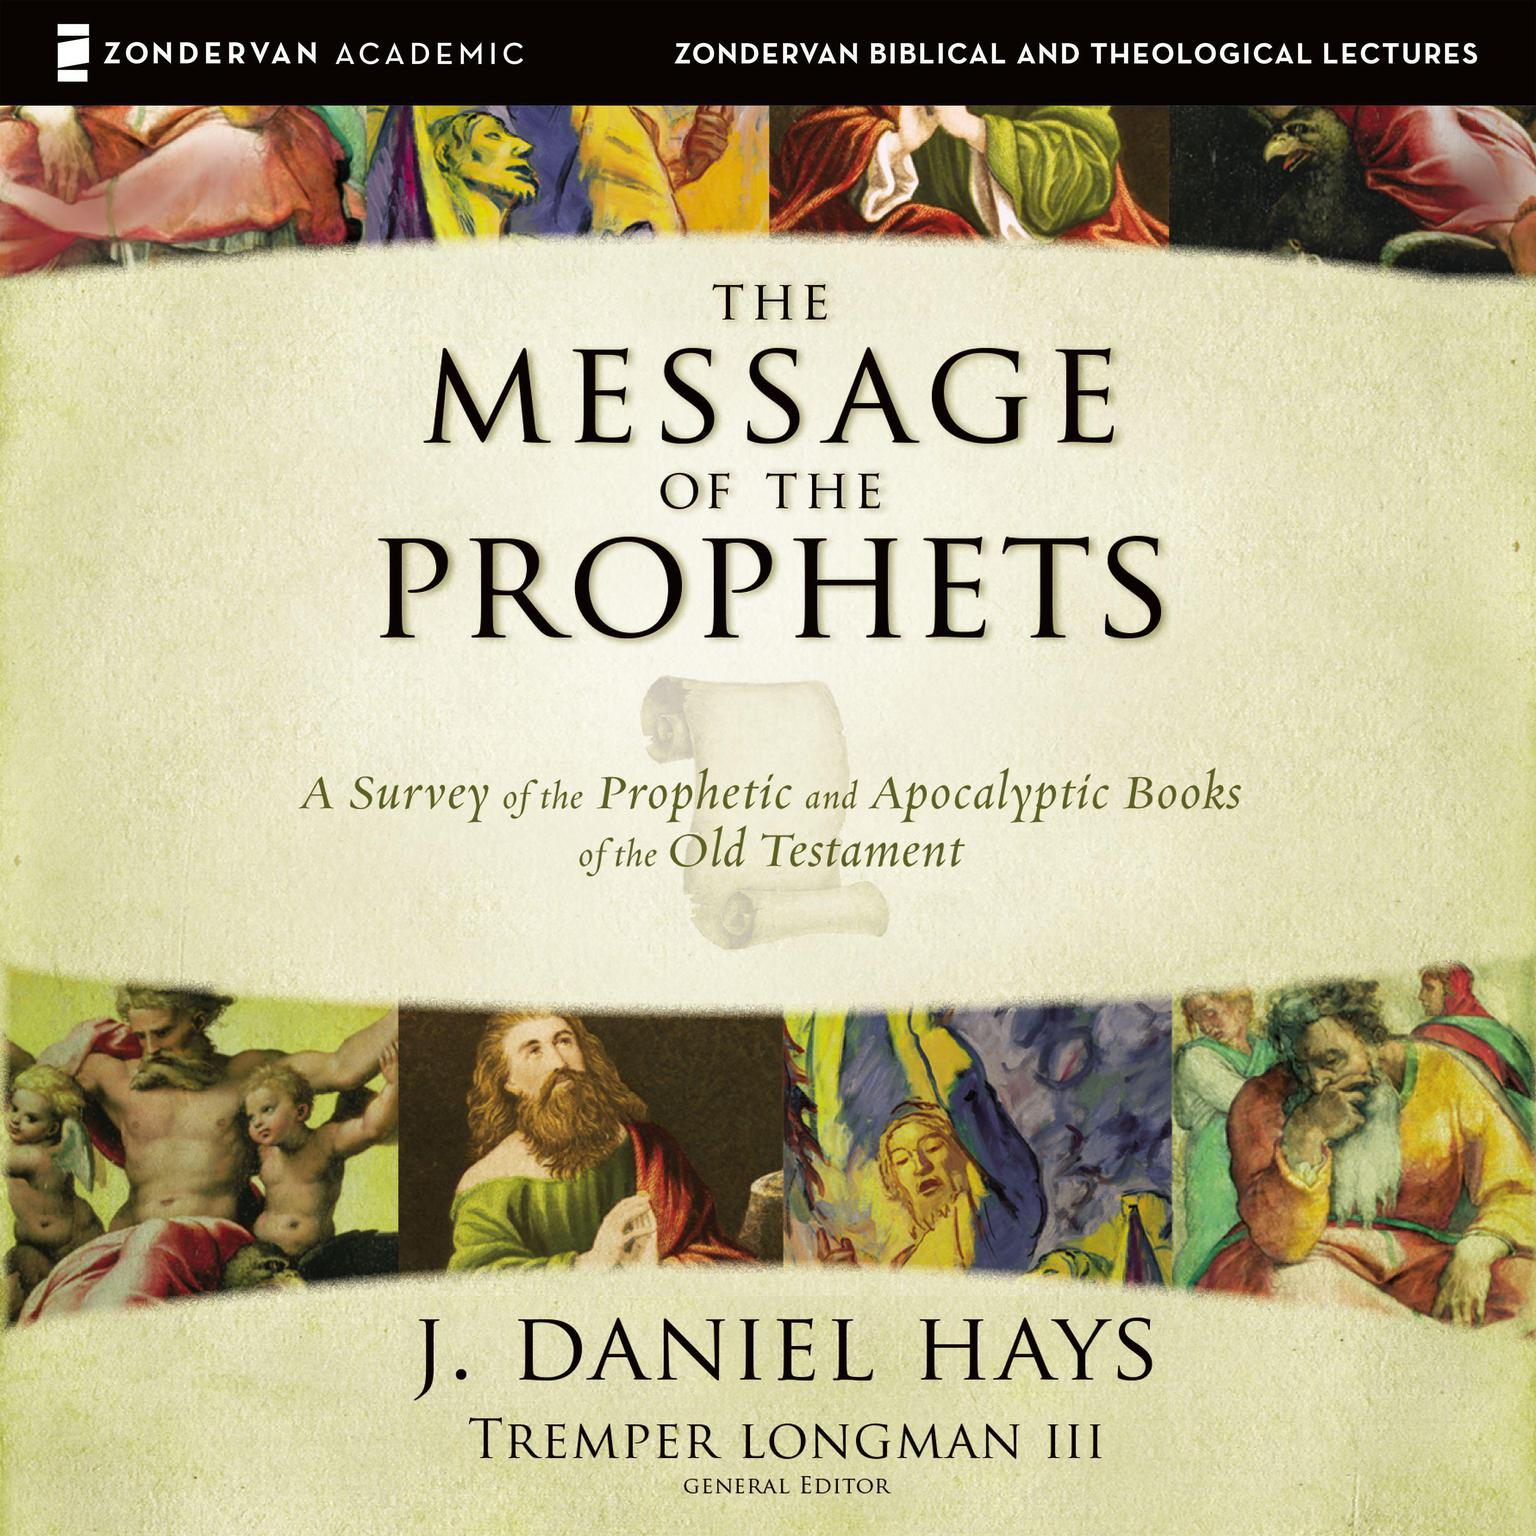 Printable The Message of the Prophets: Audio Lectures: A Survey of the Prophetic and Apocalyptic Books of the Old Testament Audiobook Cover Art